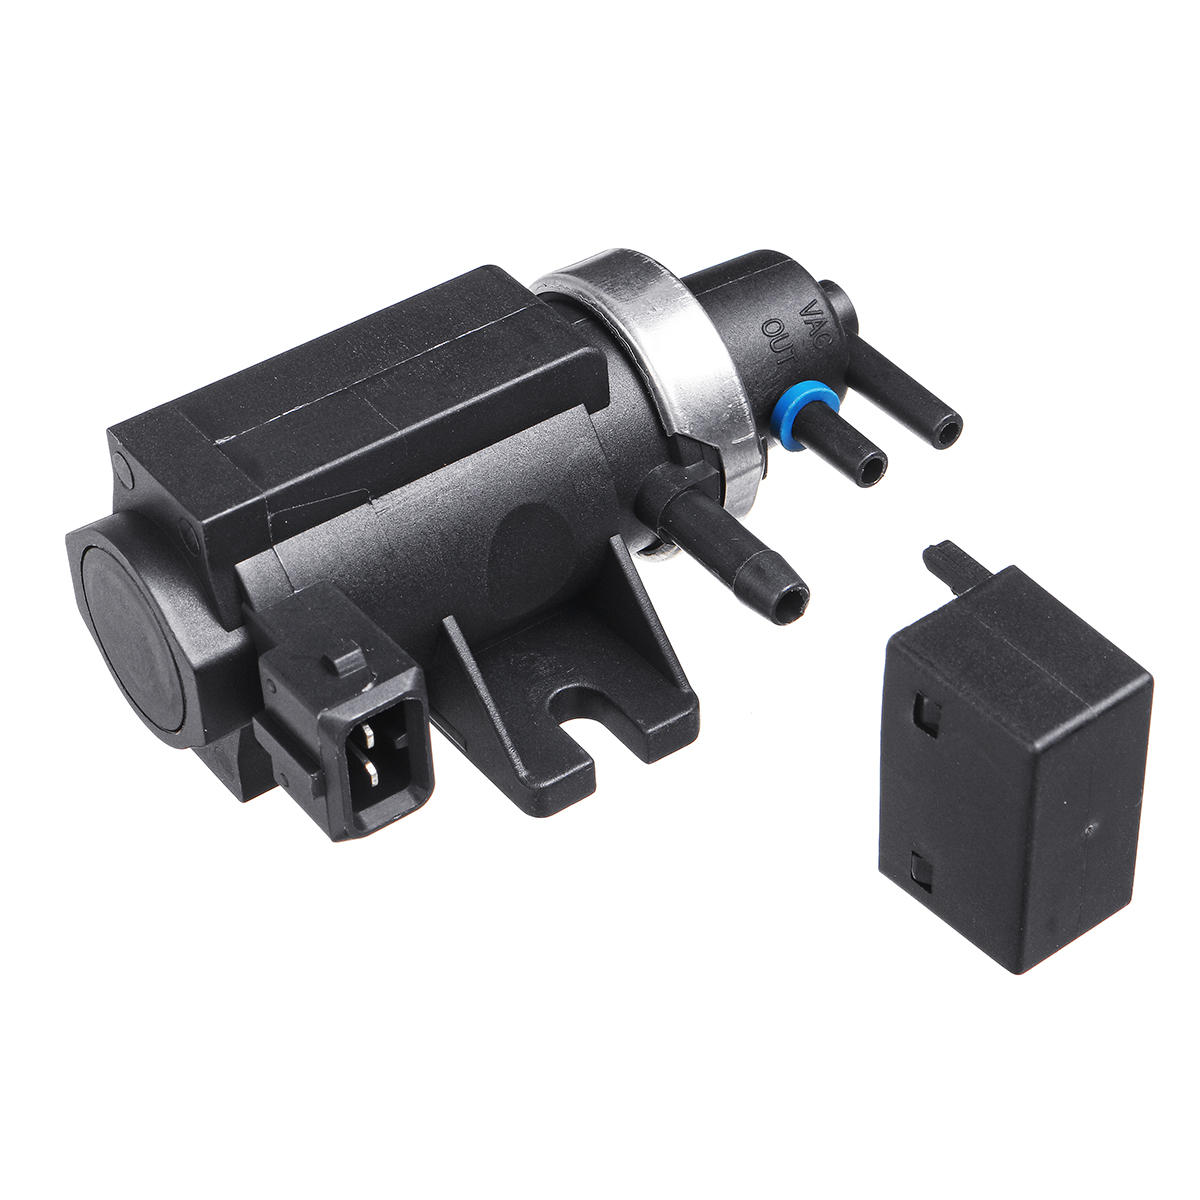 Pressure Gauge Solenoid Valve for for BMW 1/3/5/6/7 Series X3 E83 X5 E70 X6 E71 E72 2. Model: C98174